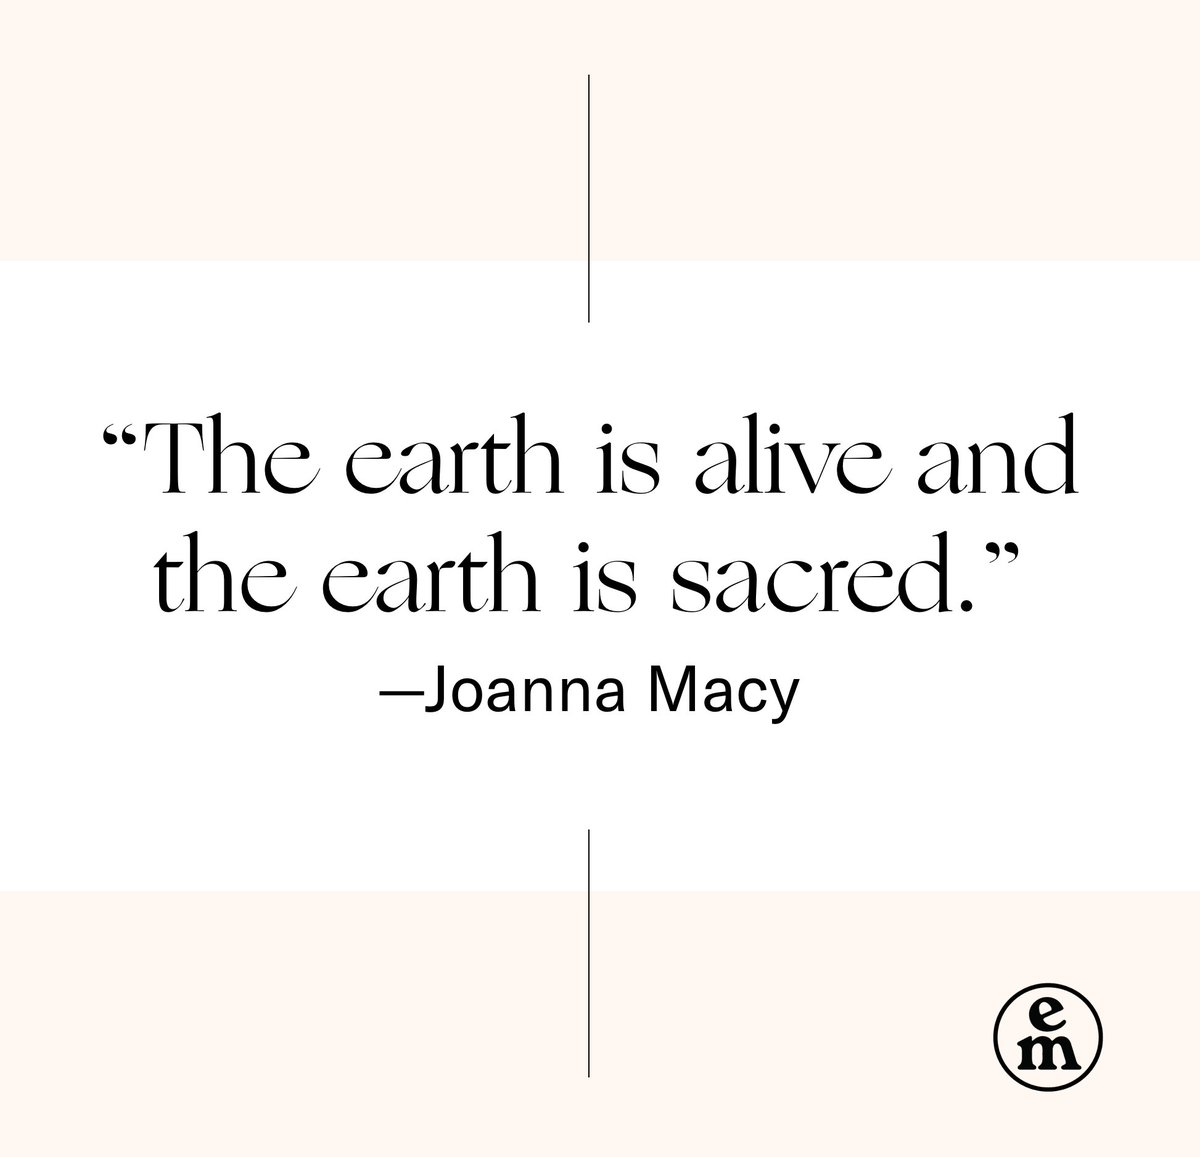 RT @emergence_zine Back in October, our executive editor @evaughanlee had the opportunity to sit down with Joanna Macy to discuss her life's journey into anti-nuclear activism, #Buddhism, and #deepecology. Listen to the interview on our website or via our podcast: https://t.co/dDbbtfH6VJ